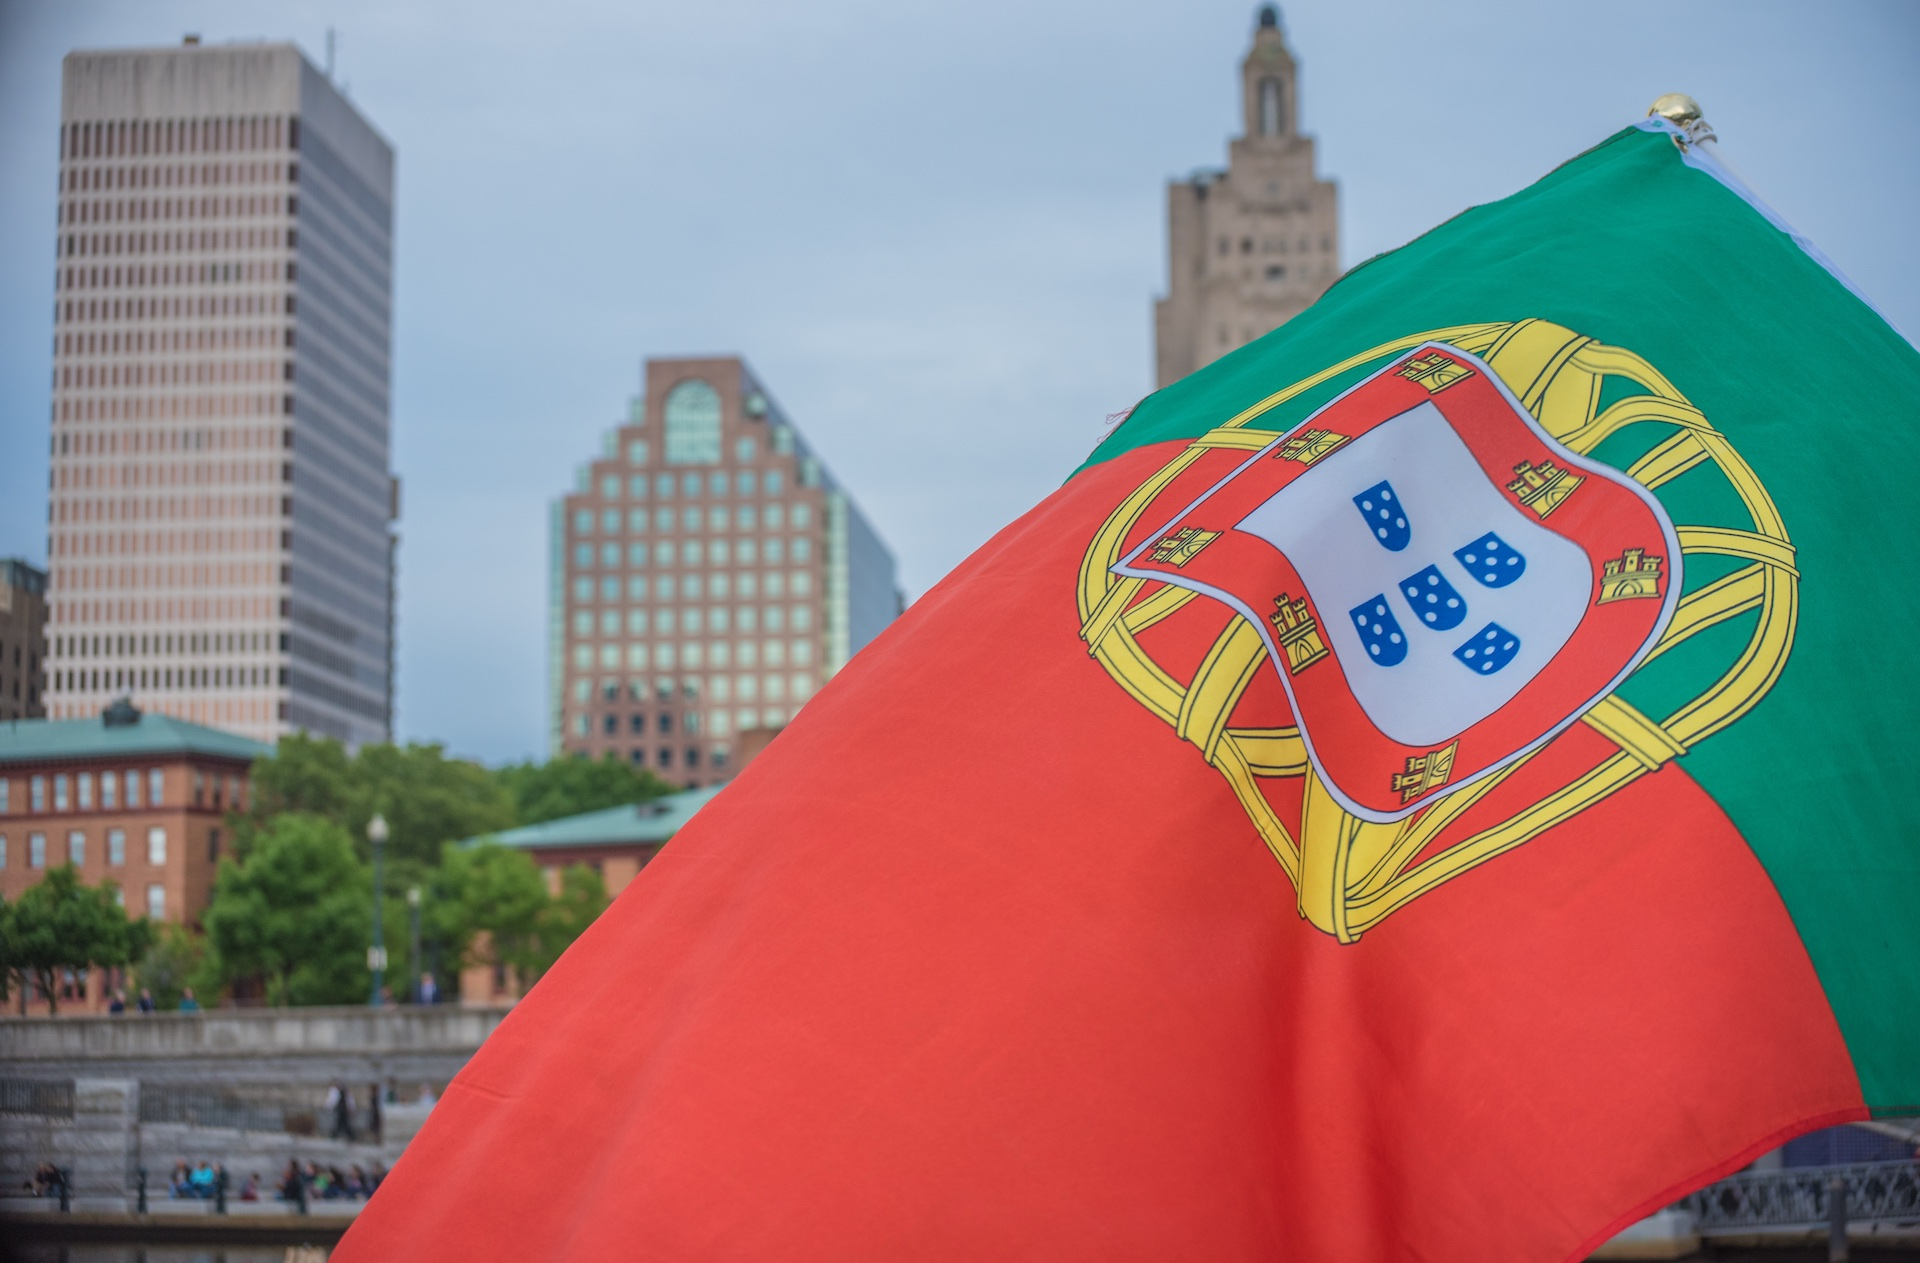 portuguese-flag-over-waterplace-park-during-waterfire-basin-lighting-for-ri-day-of-portugal_27925814